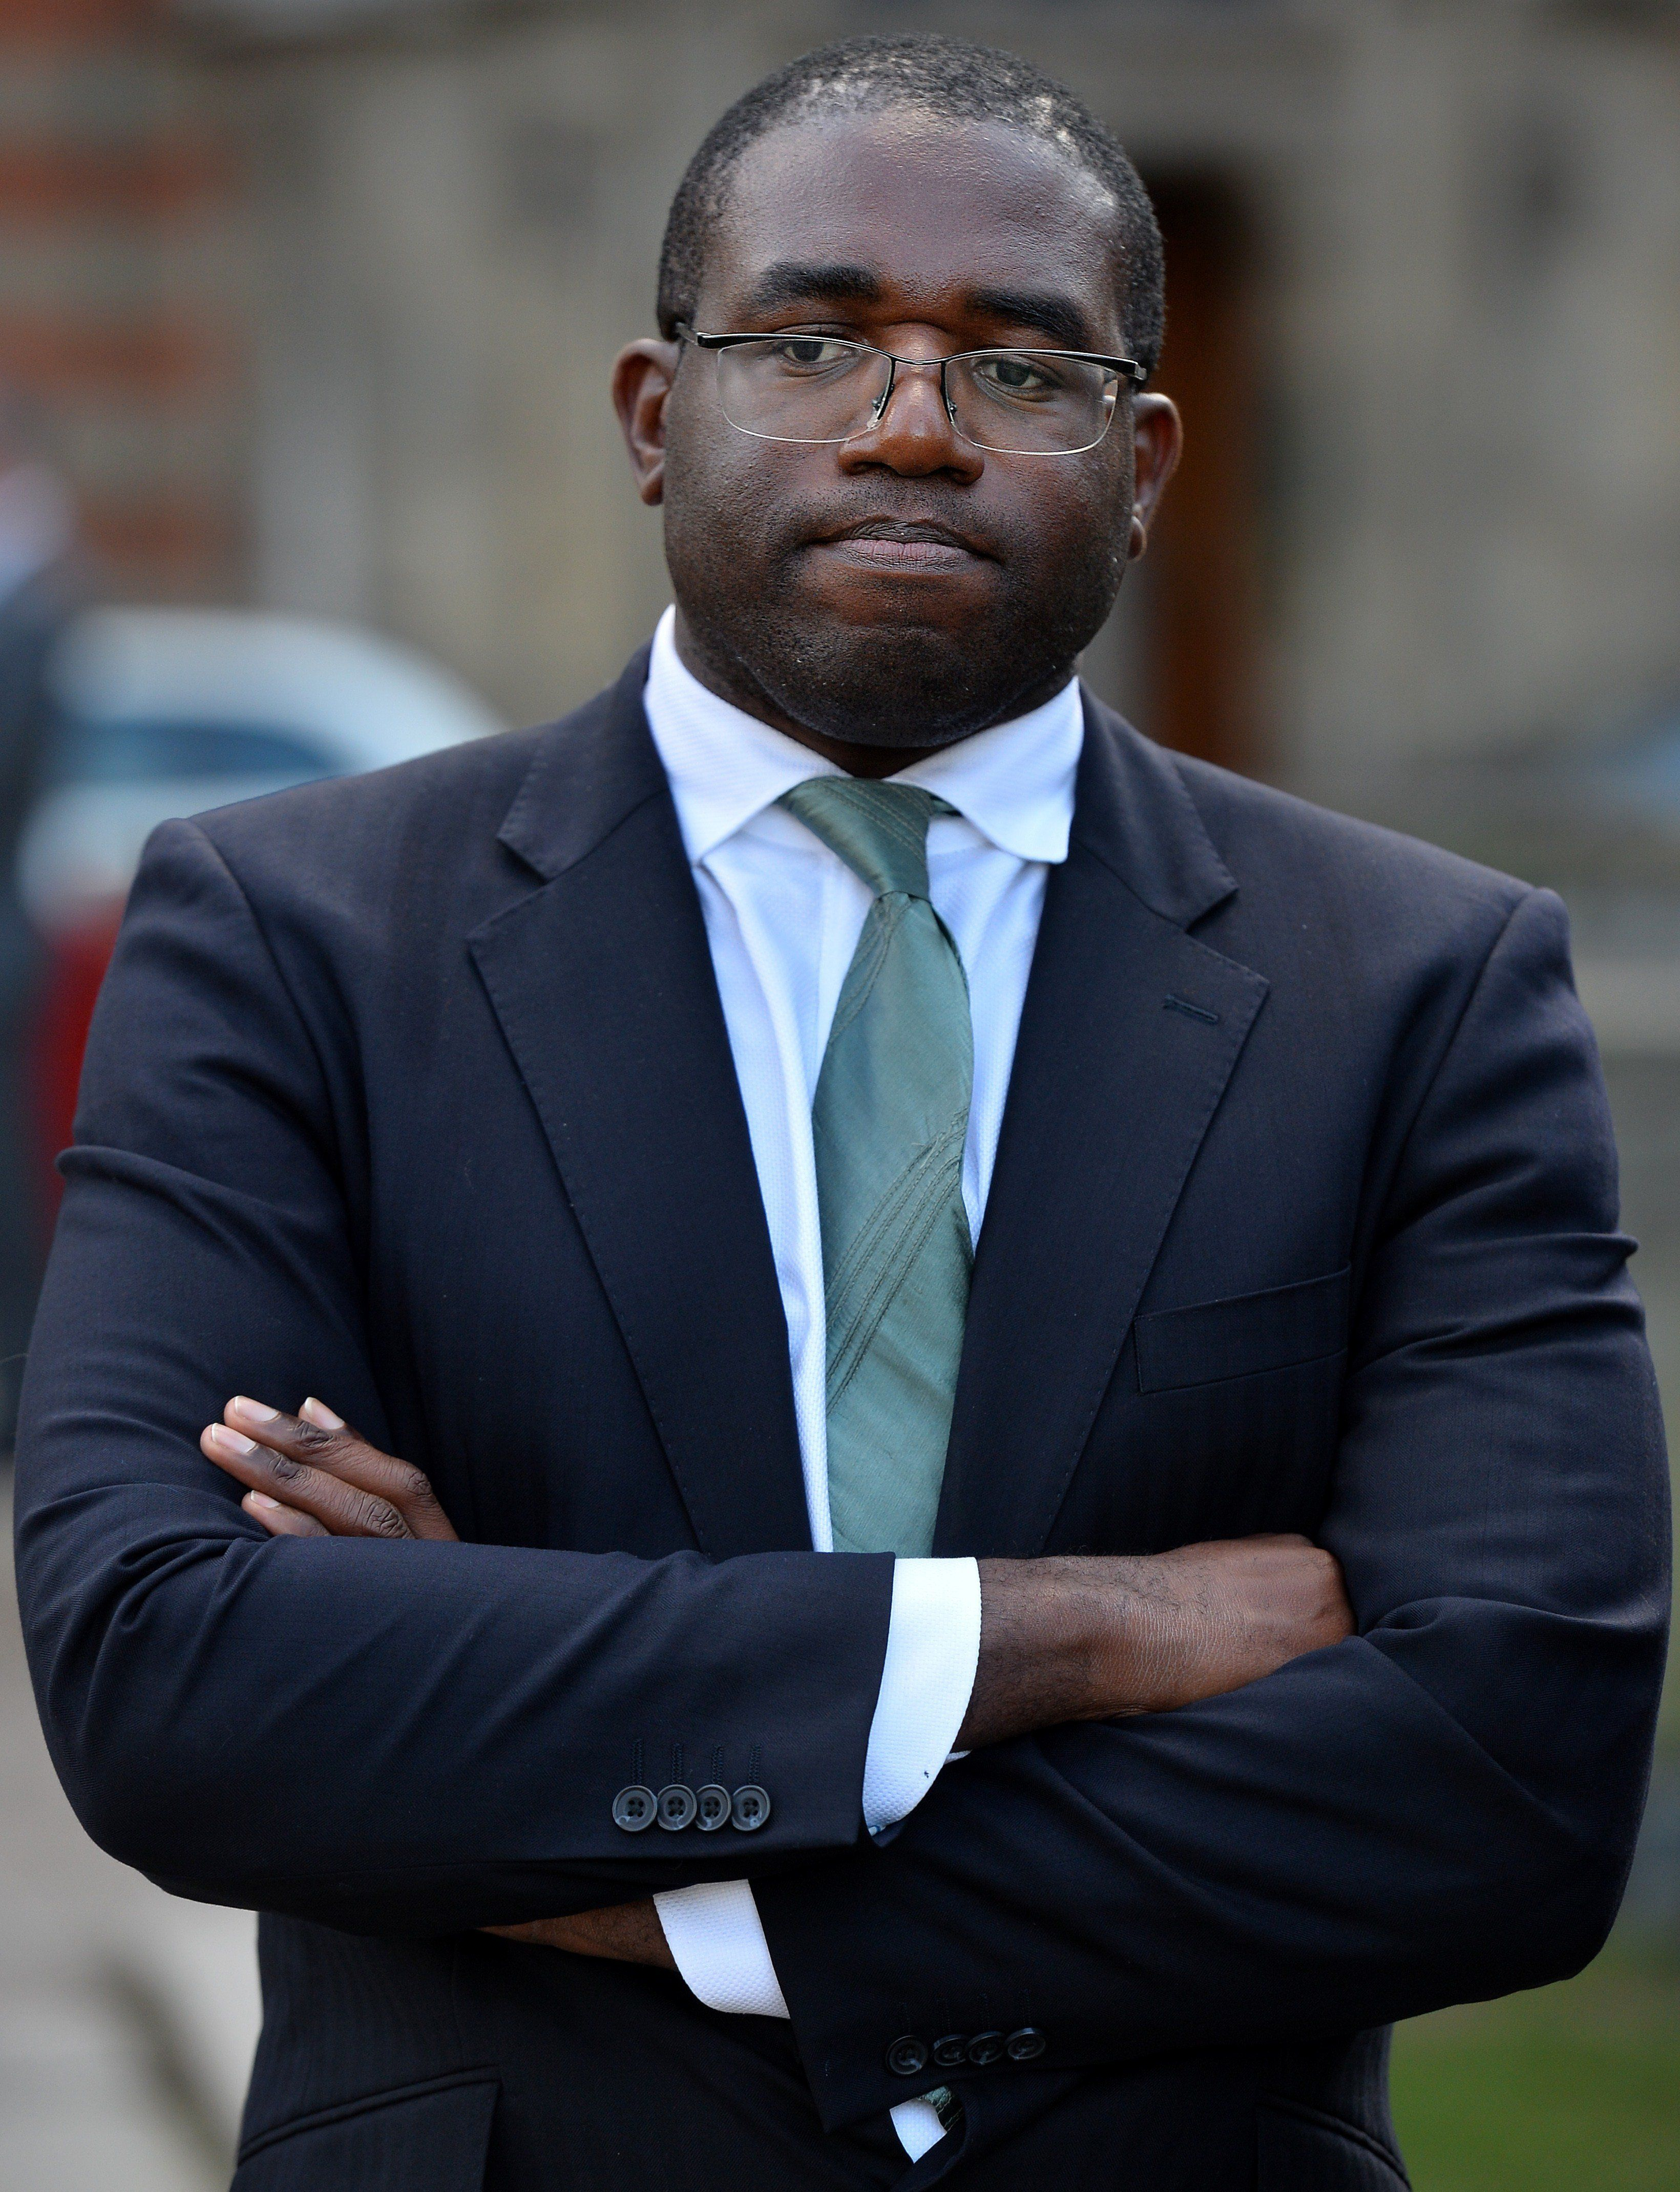 Outrage As Windrush Briton Was Said To Be Facing 'Imminent Deportation'